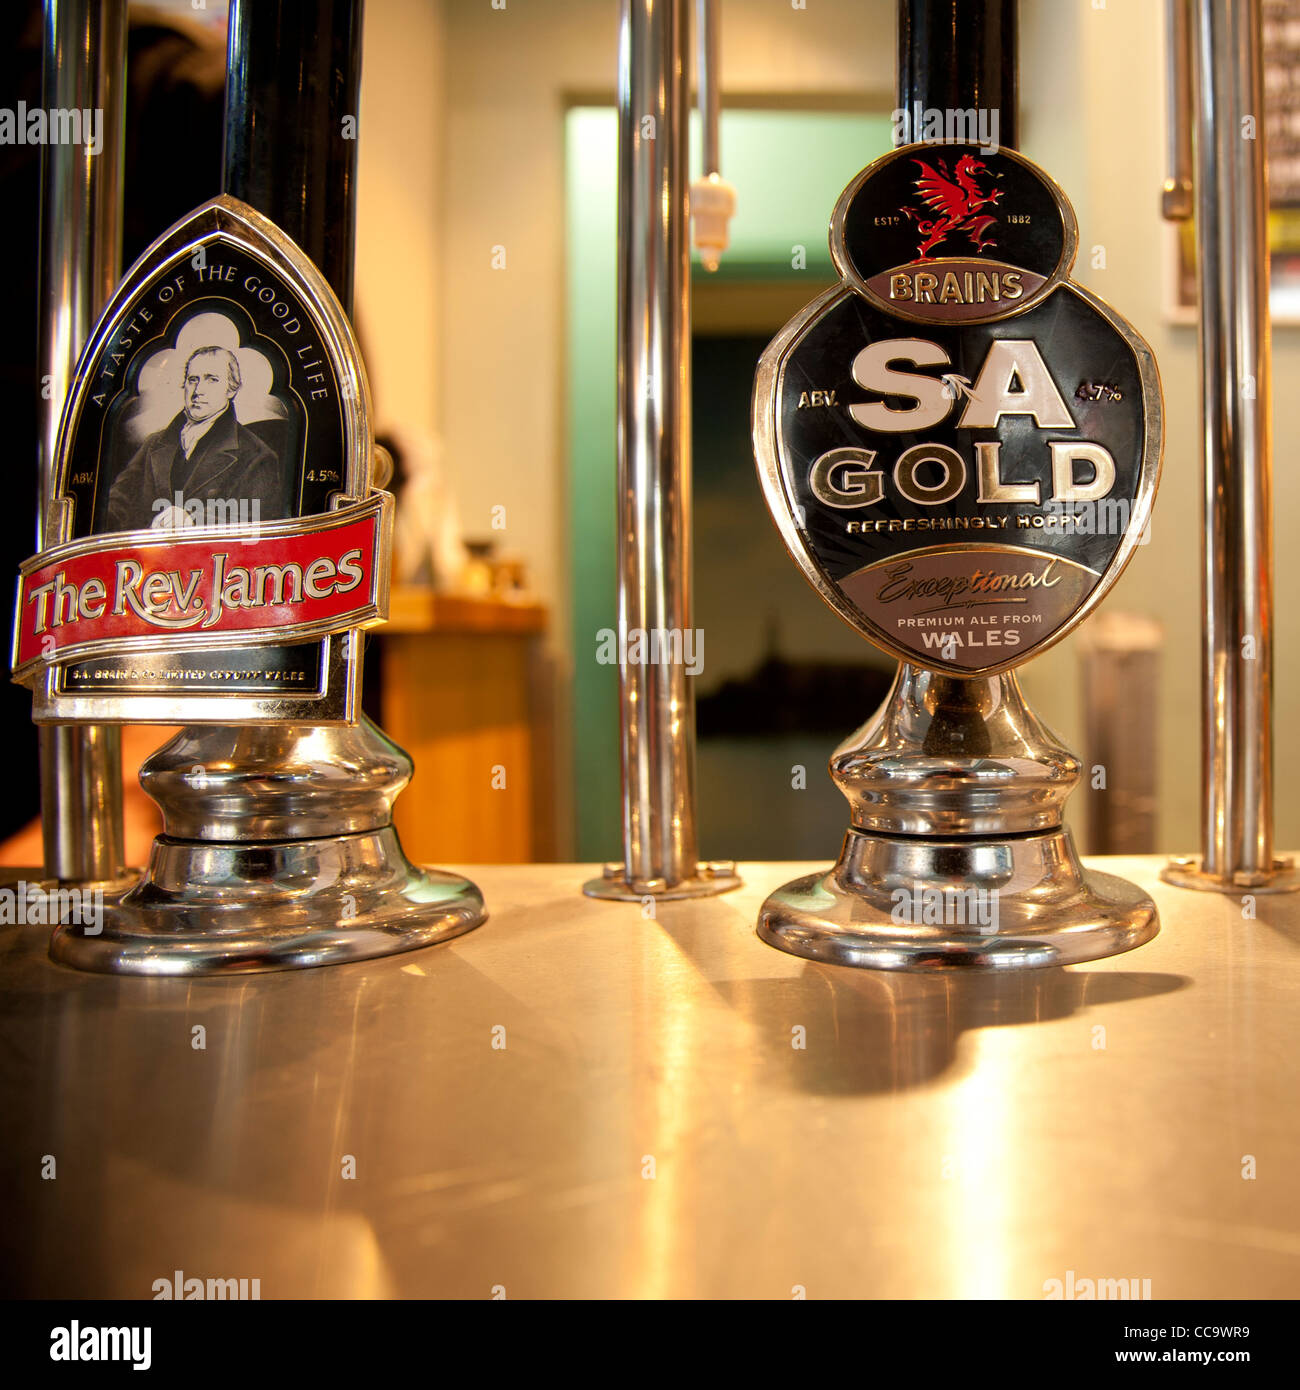 Cardiff brewery Brains SA Gold and The Rev James draught beer pumps in a pub bar UK Stock Photo